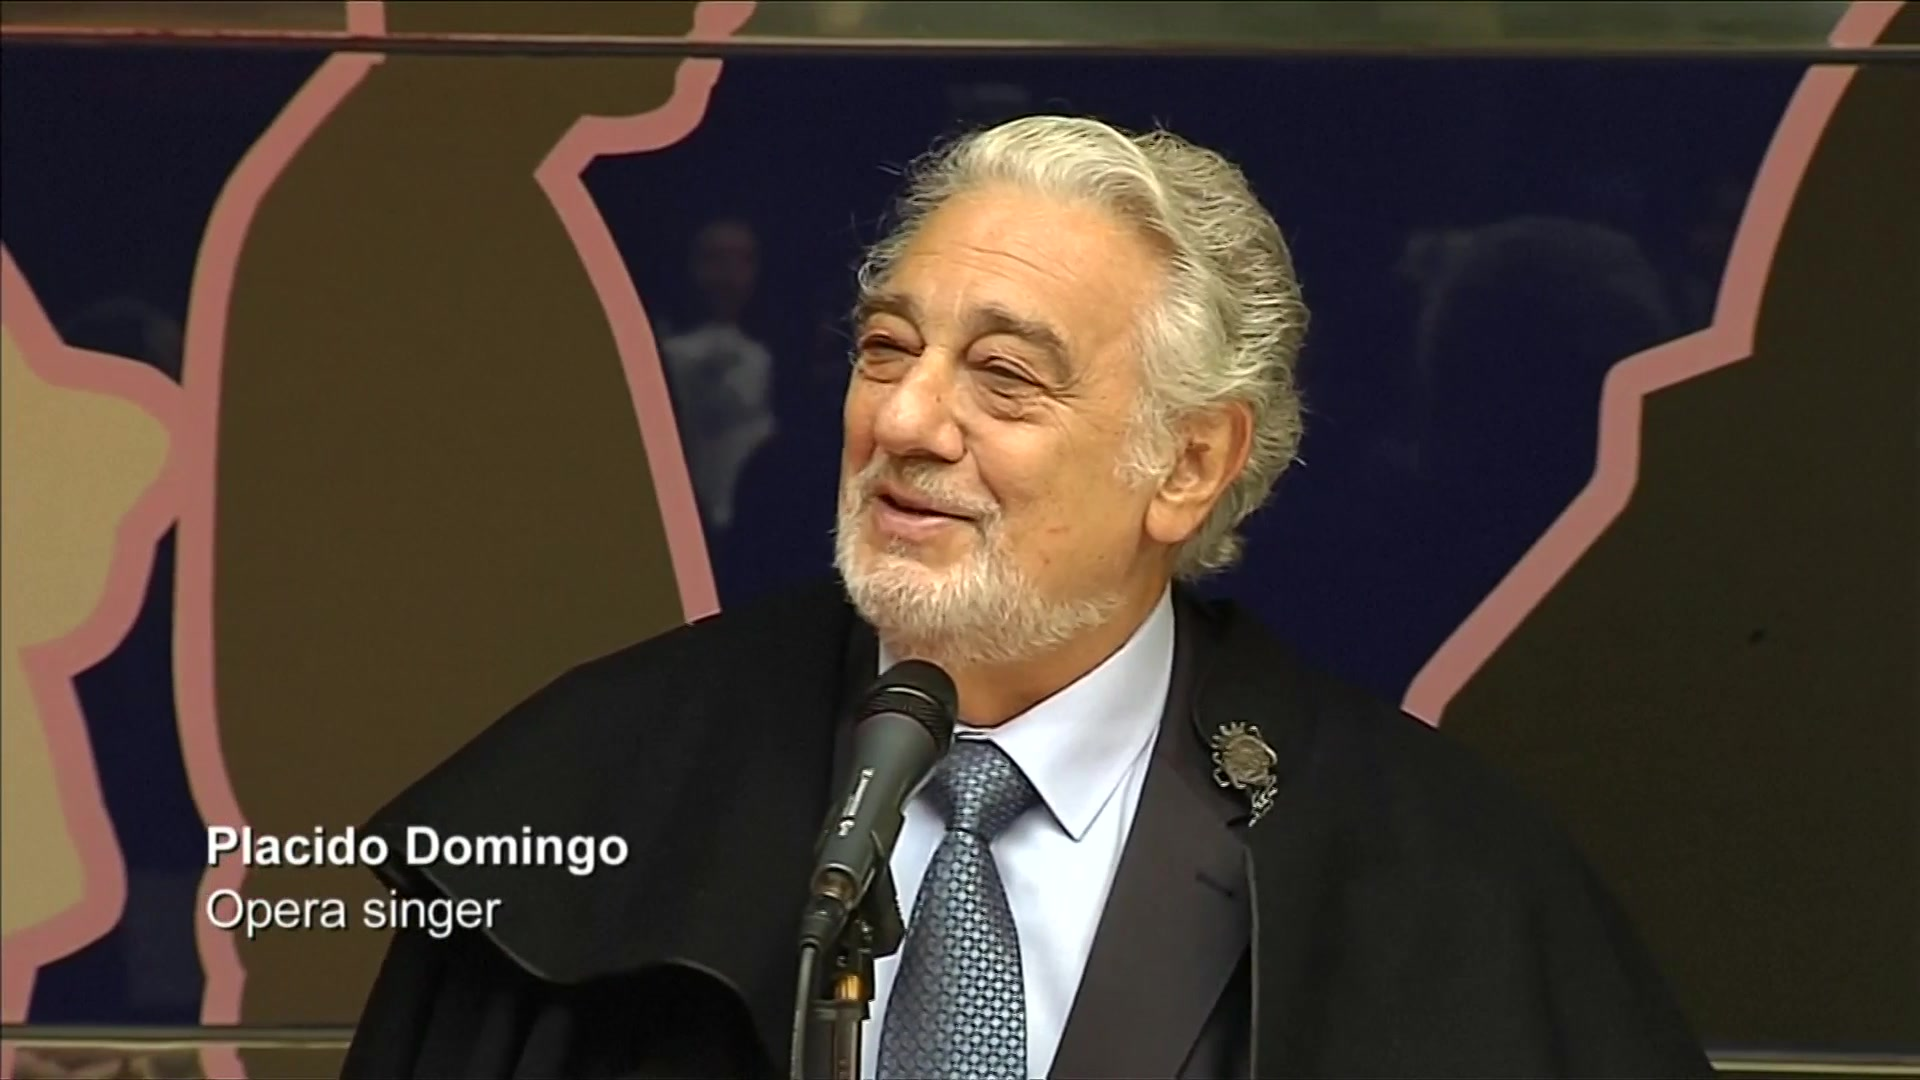 Placido Domingo Unveils His Statue at Madrid Wax Museum